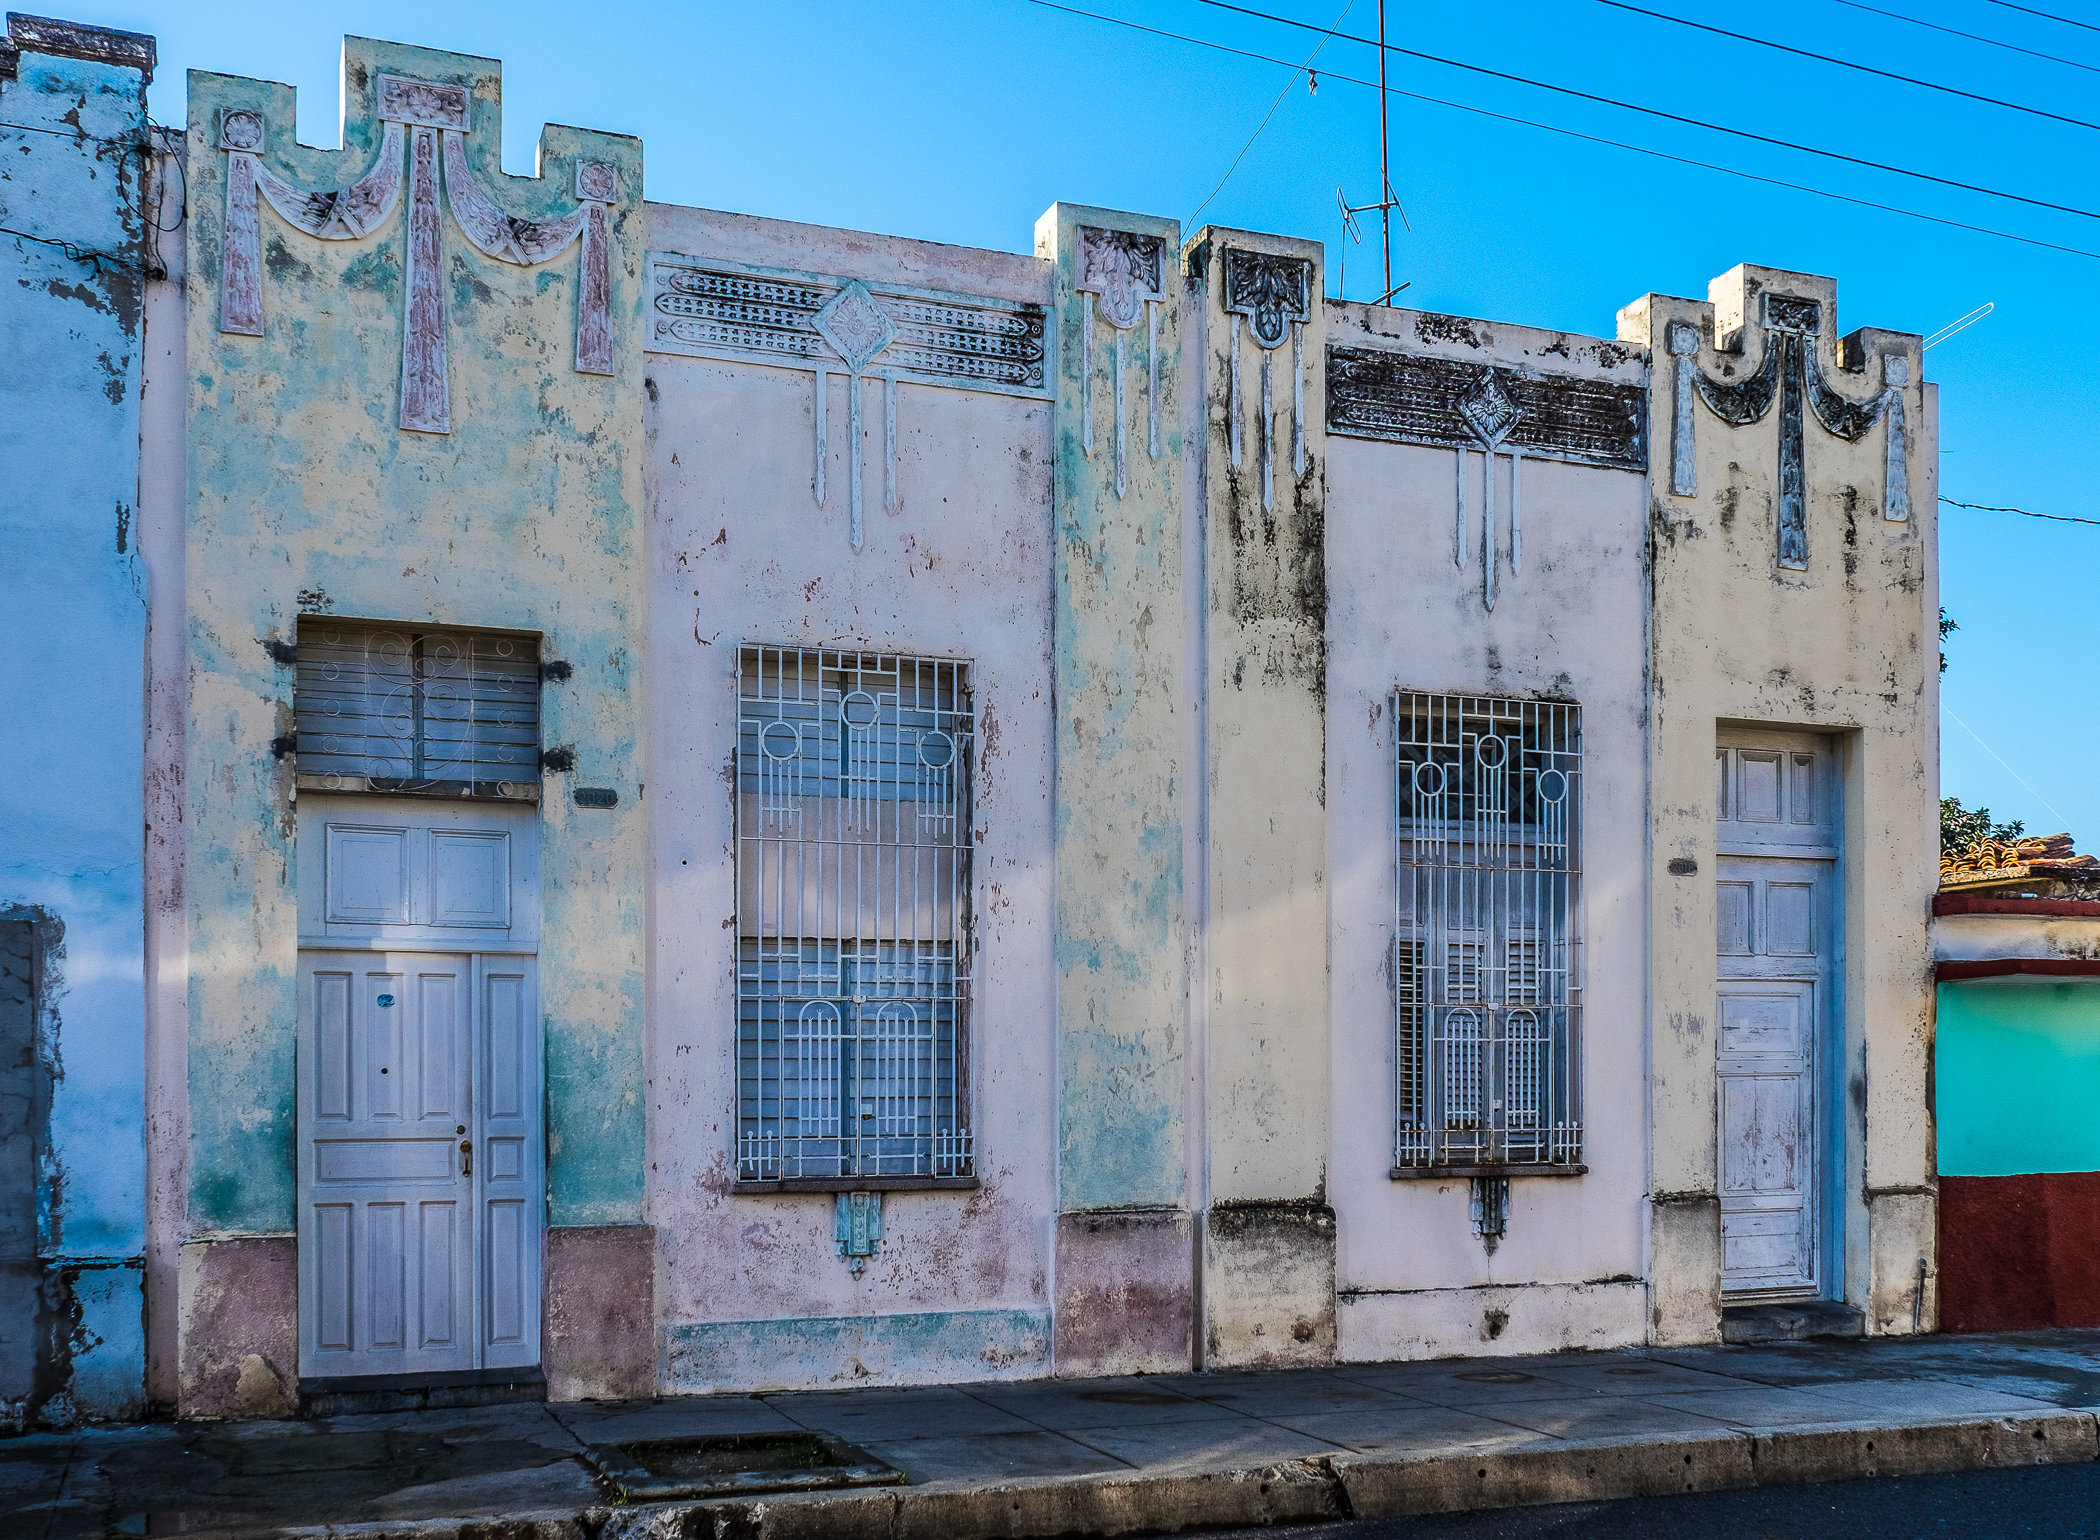 Cienfuegos art deco building